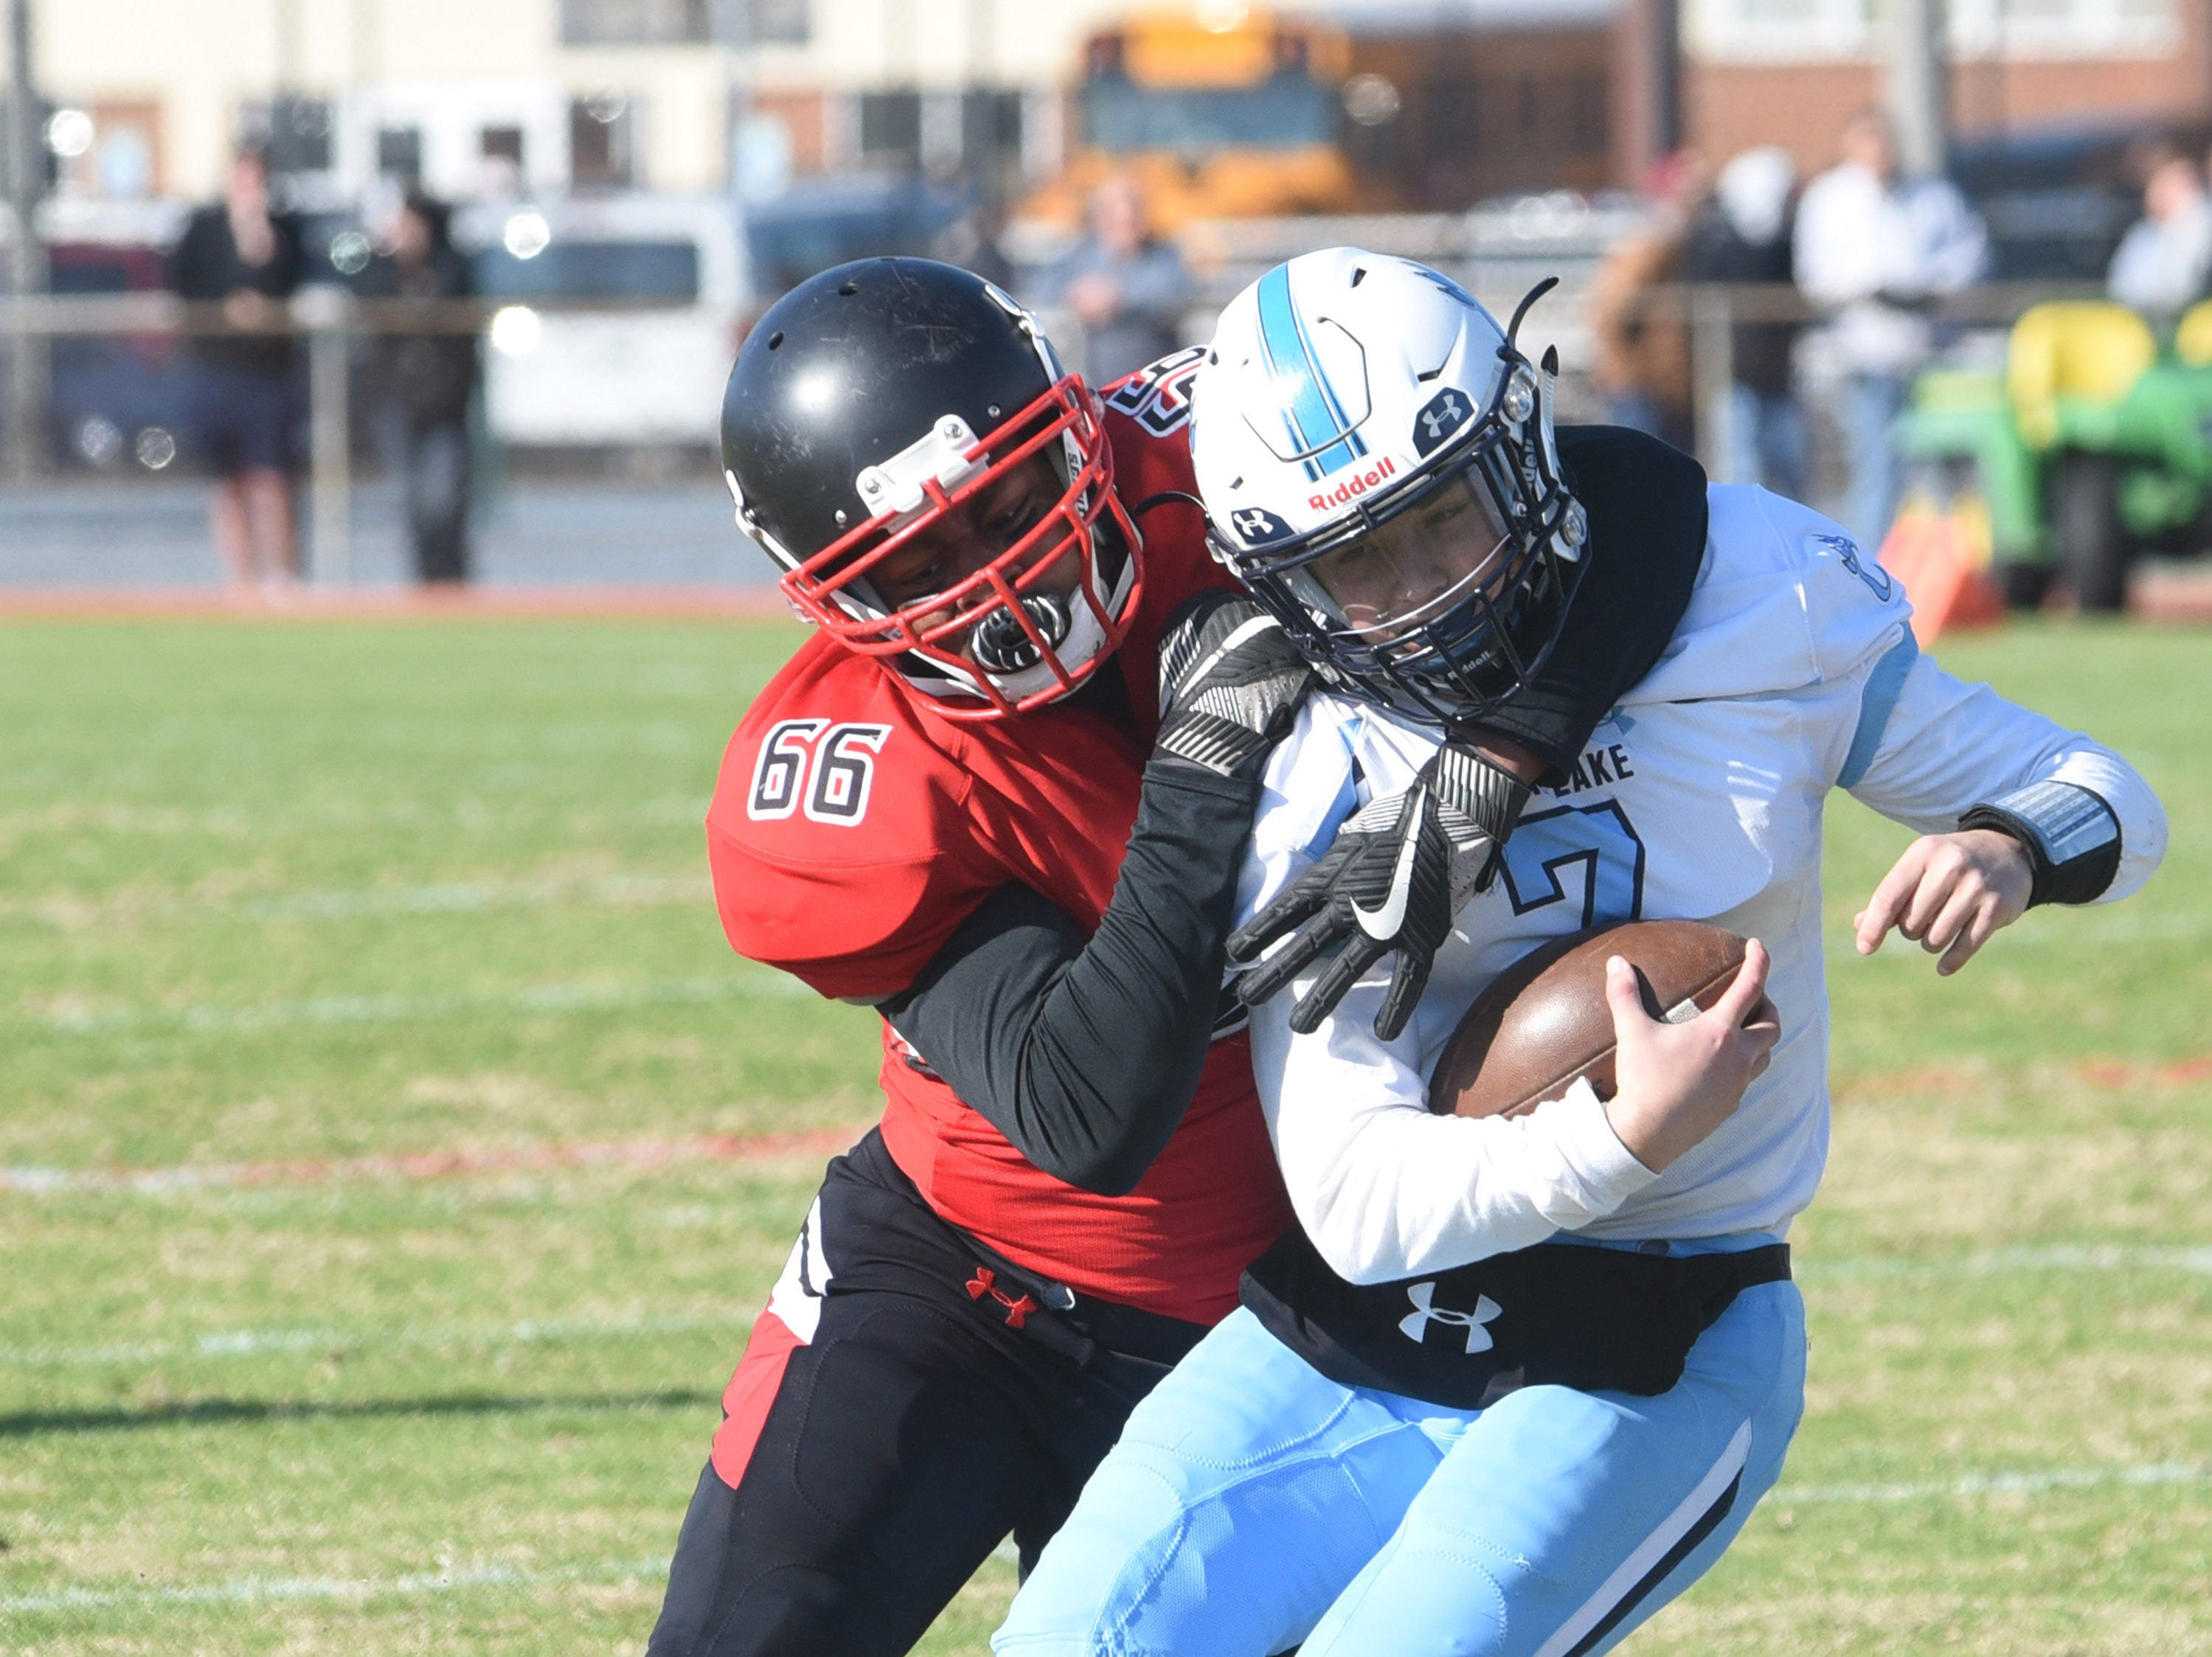 Bennett's Brian Duperval sacks Chesapeake quarterback Dylan Young in the first half during James M. Bennett's playoffs game vs. Chesapeake at County Stadium on Saturday.